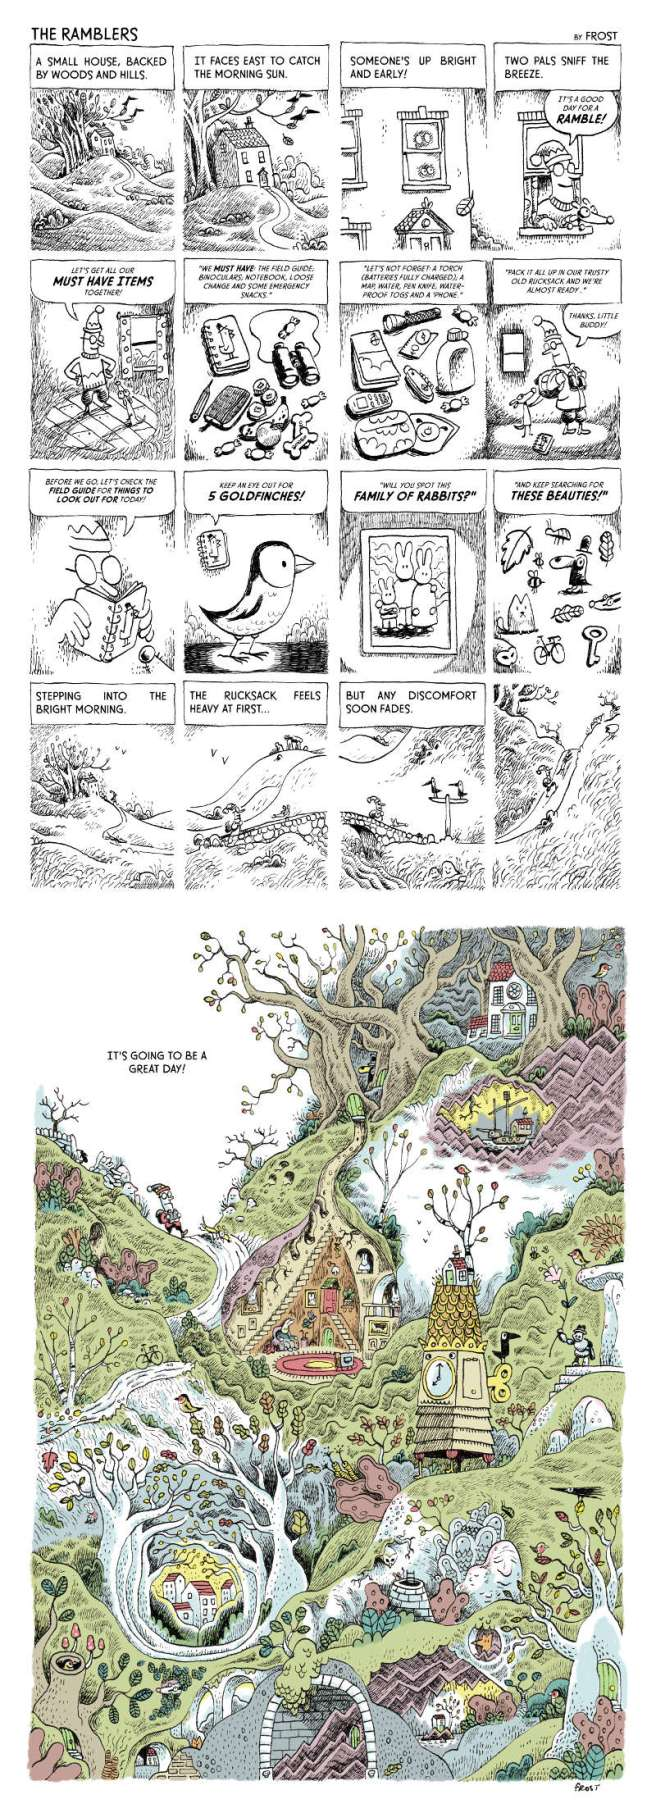 The Ramblers_Pages_01_02_Comp-01